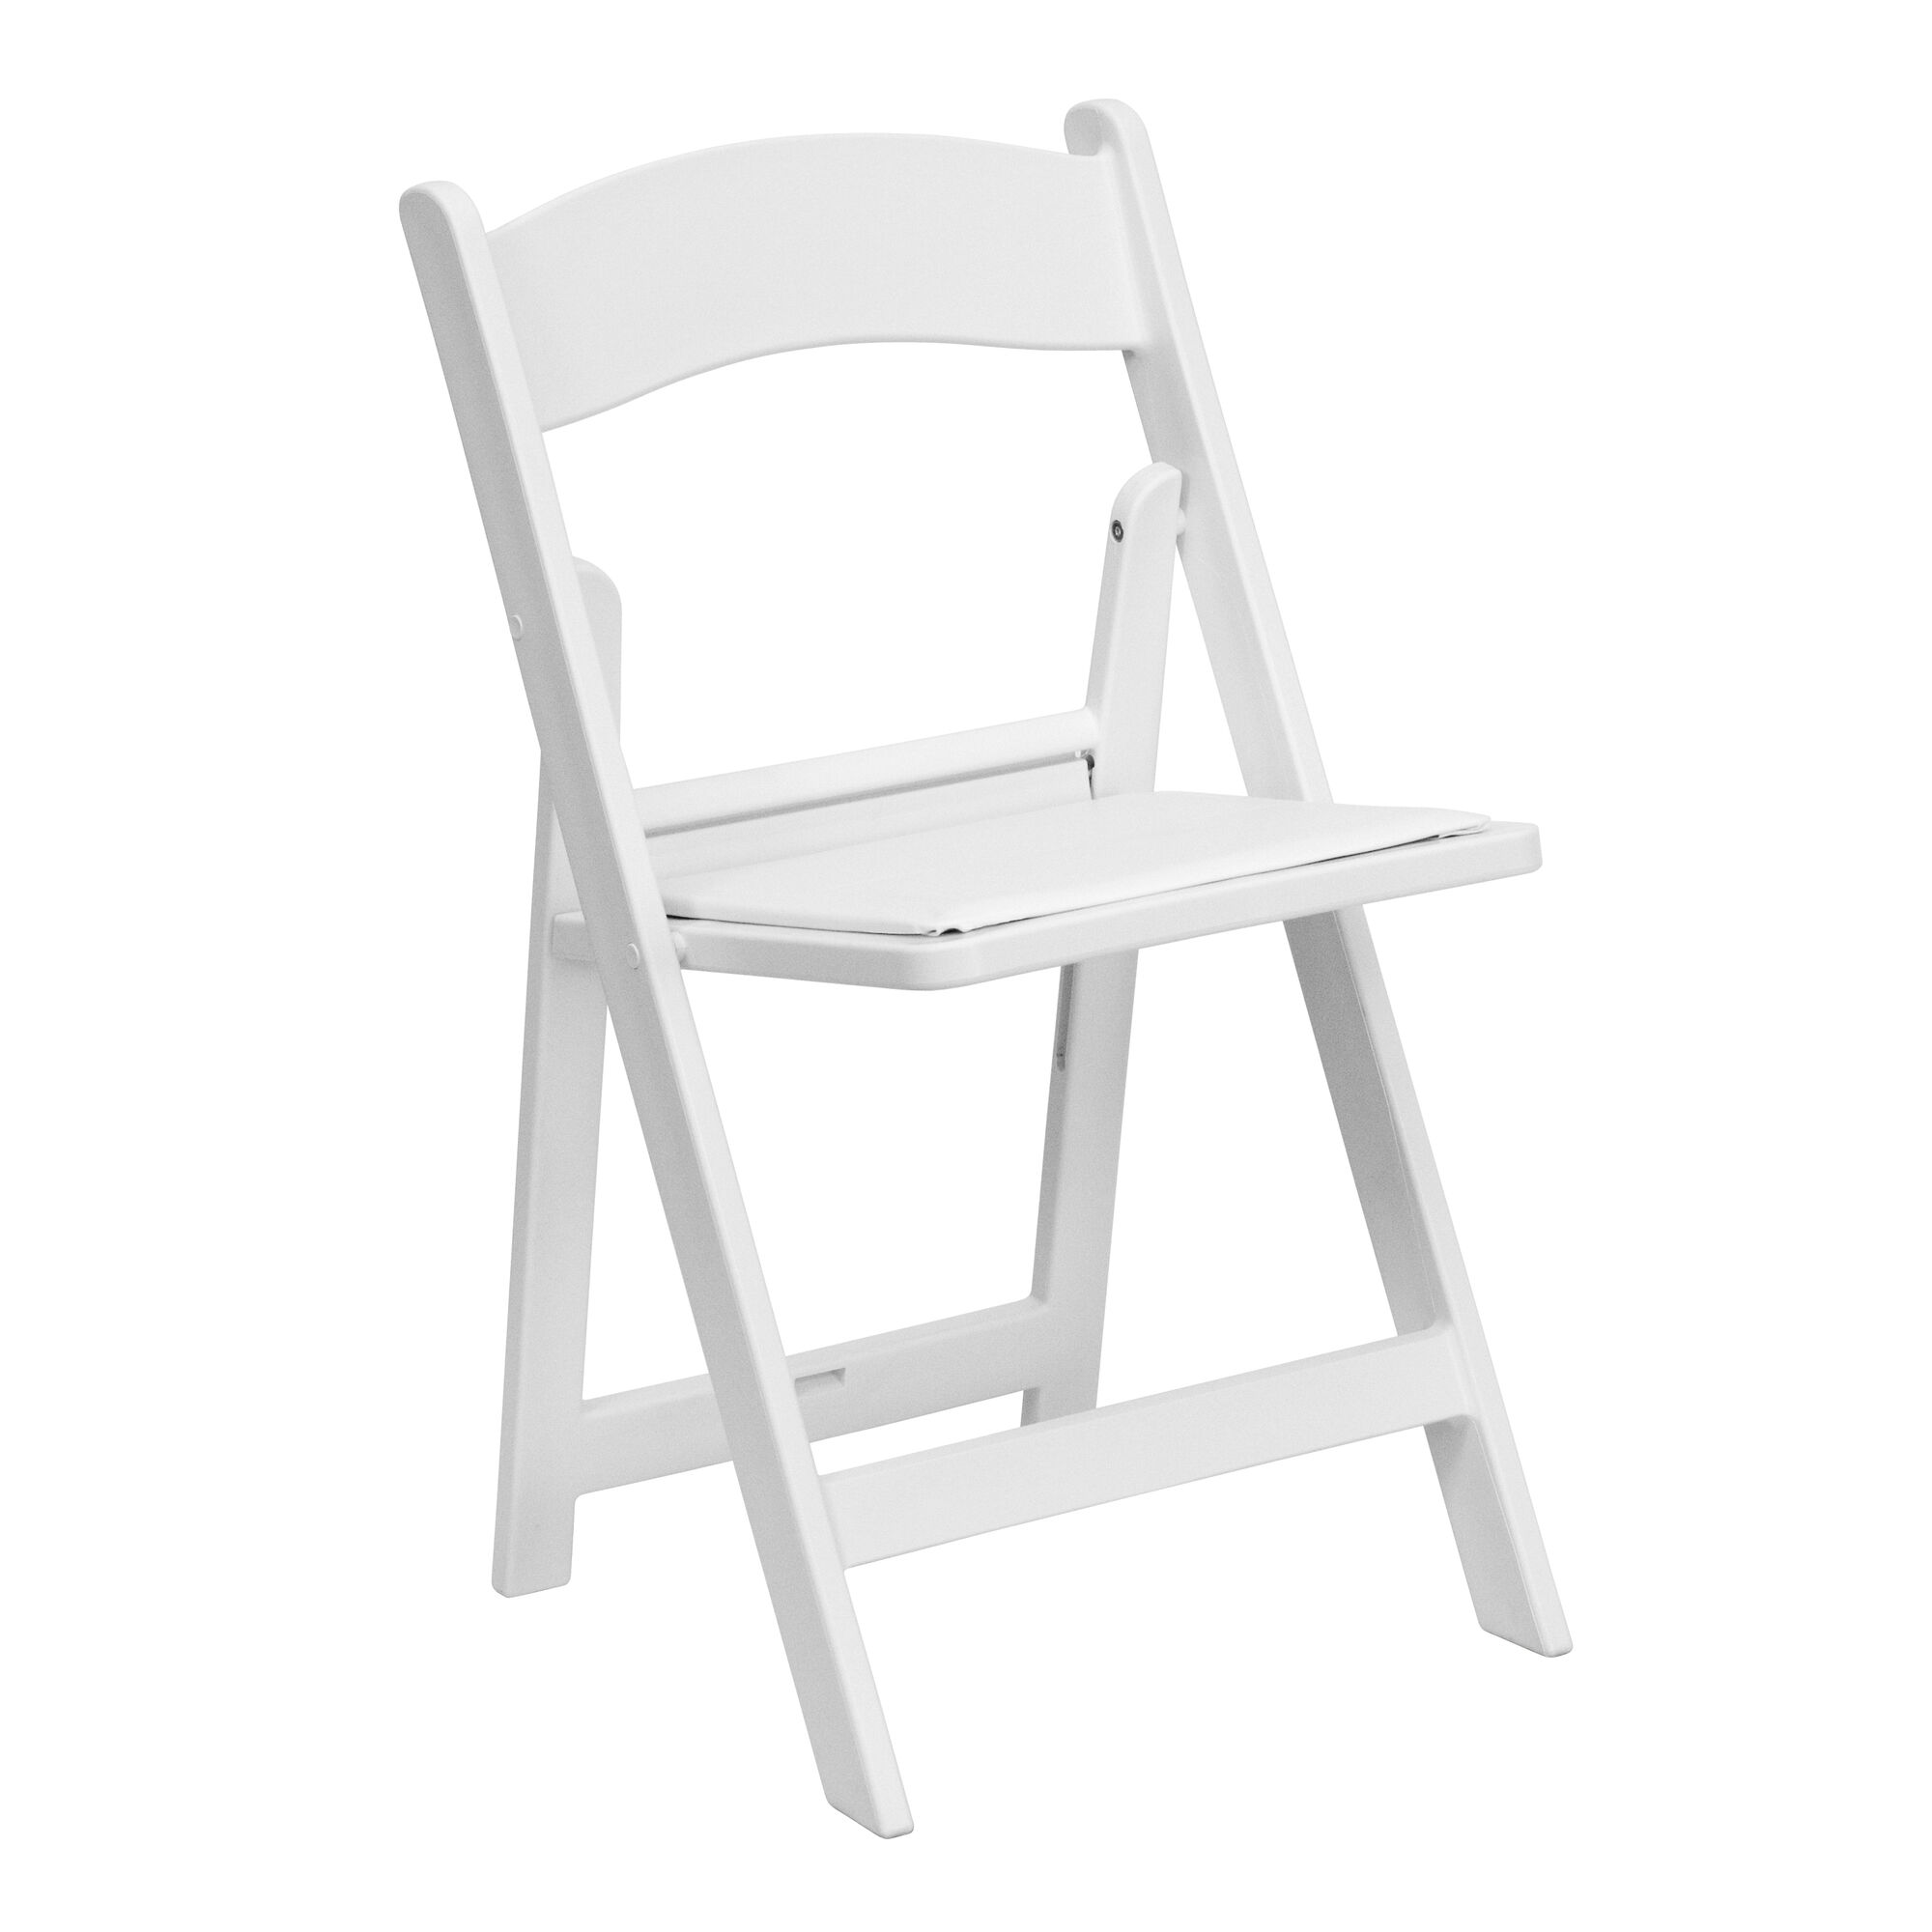 Cool Hercules Series 1000 Lb Capacity White Resin Folding Chair With White Vinyl Padded Seat Theyellowbook Wood Chair Design Ideas Theyellowbookinfo